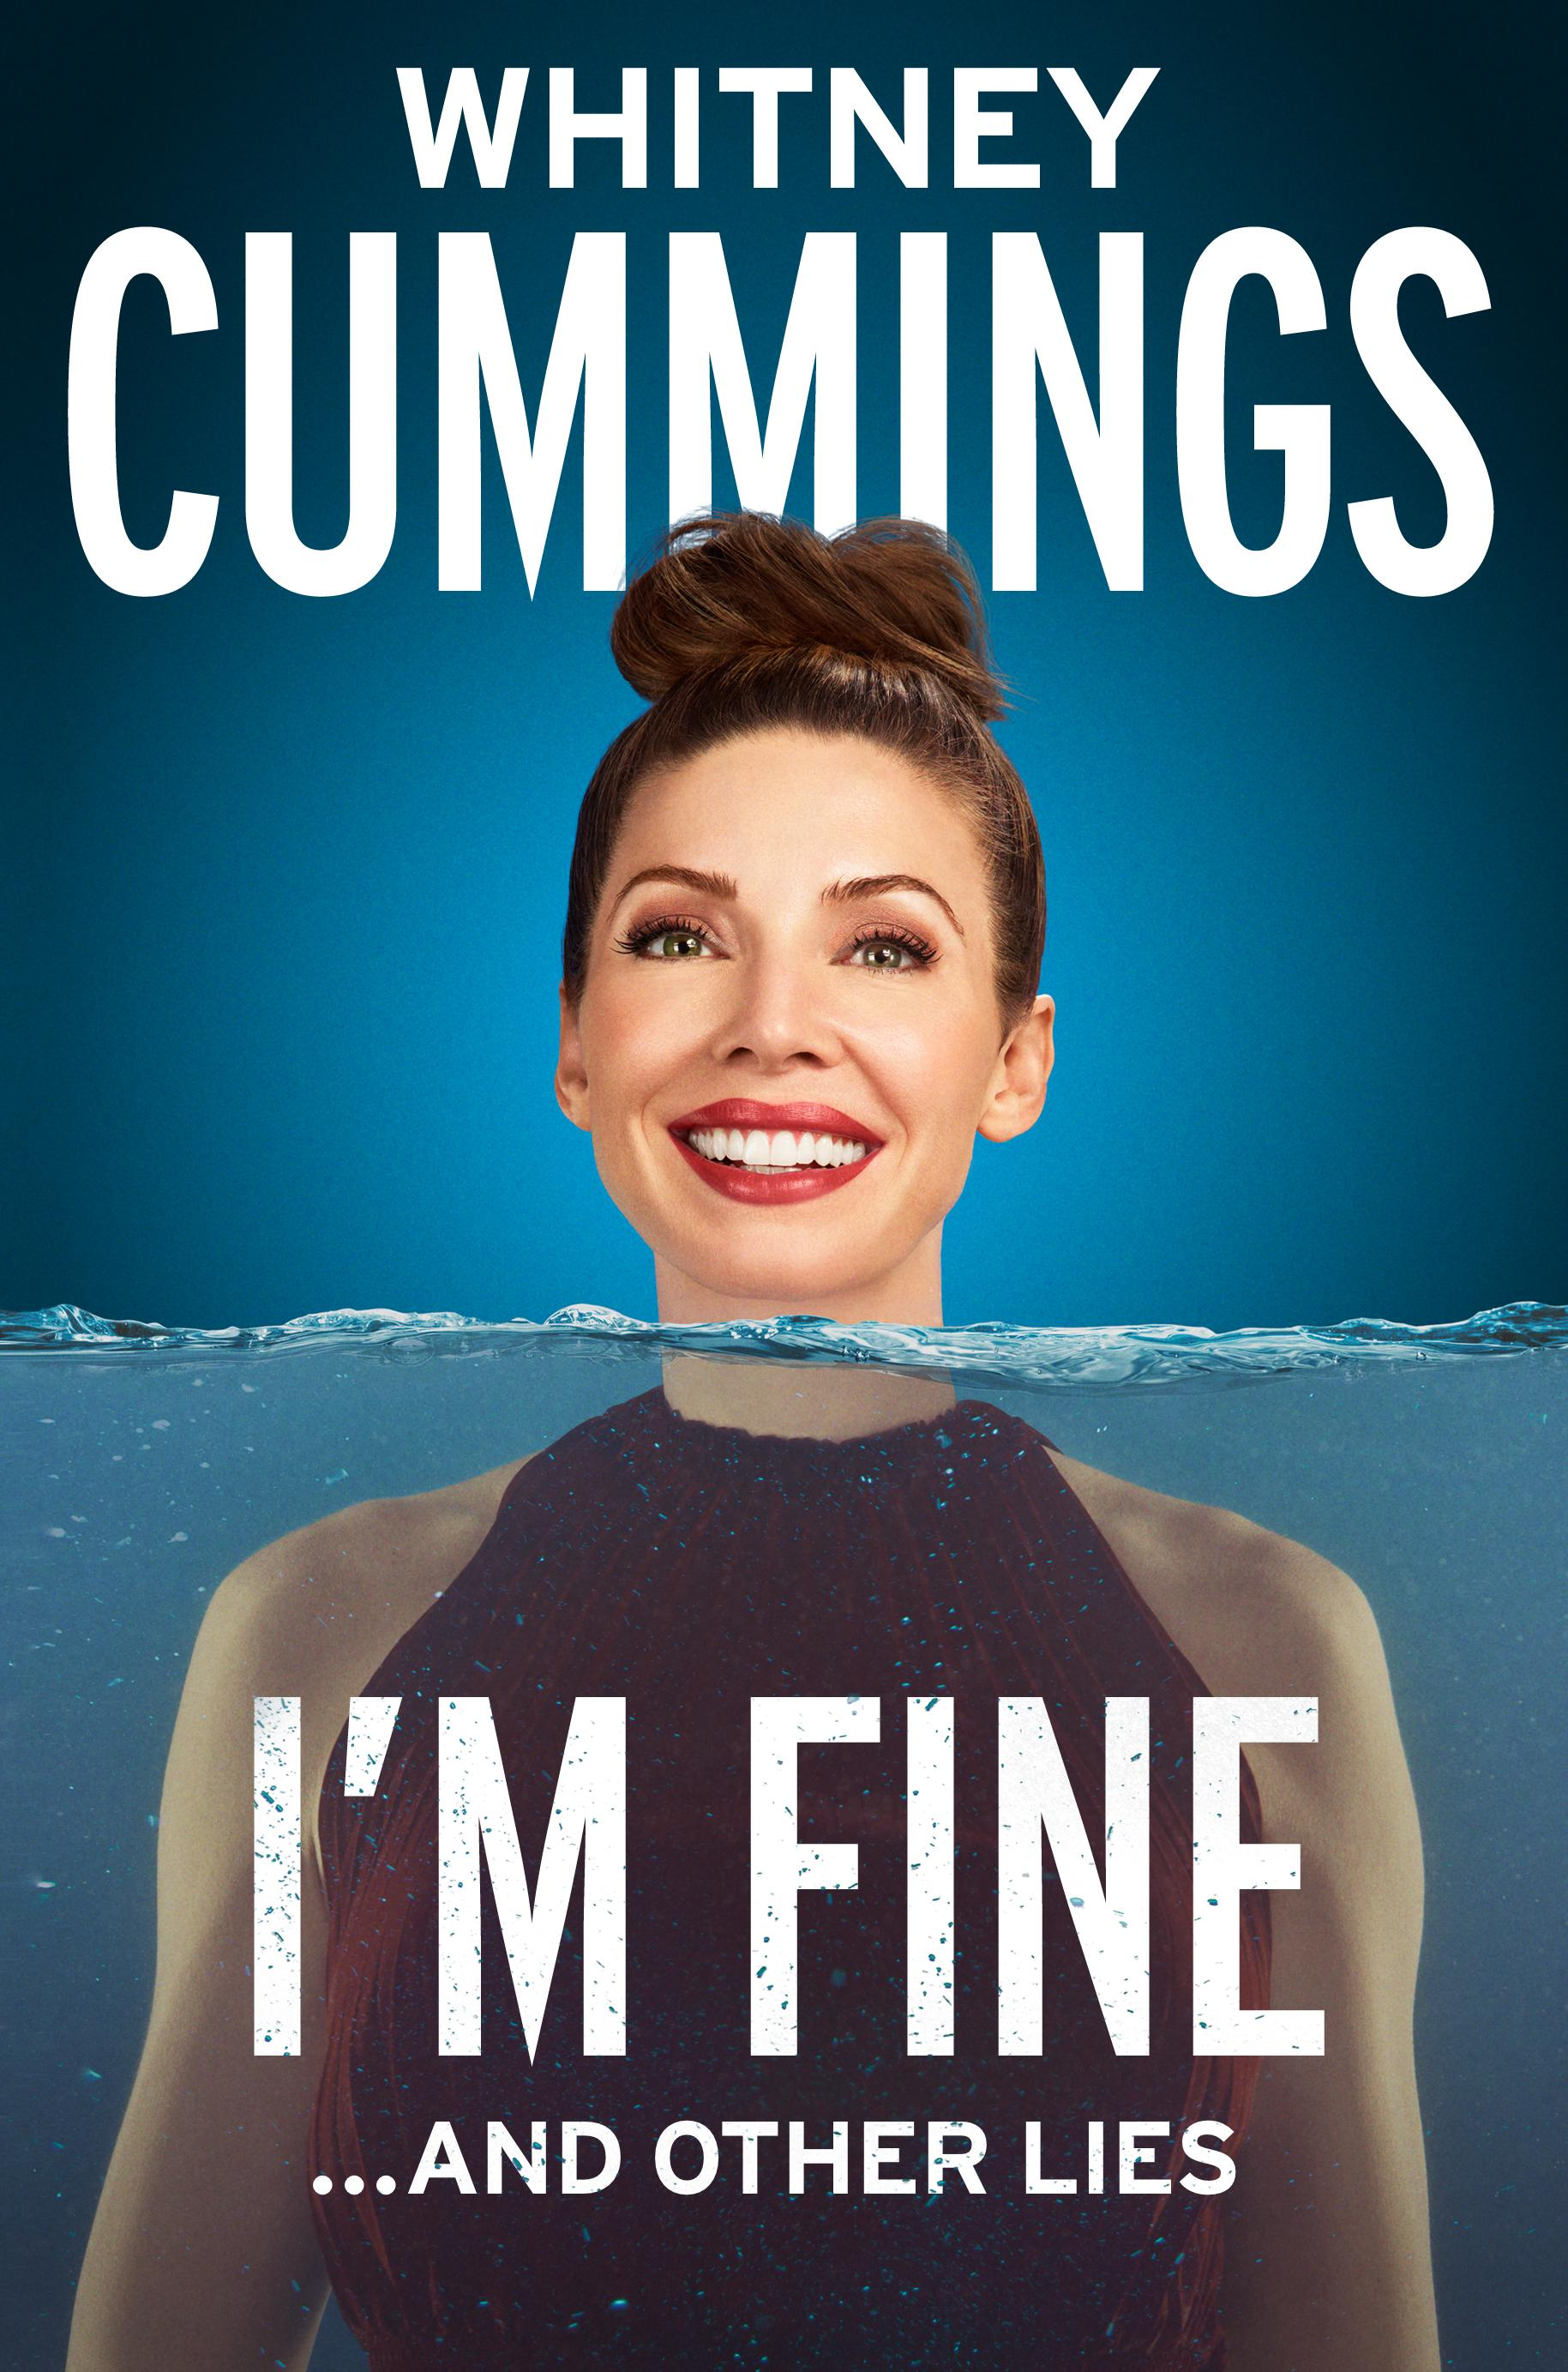 <p>&quot;I'm Fine...and Other Lies&quot; by Whitney Cummings (Image: Courtesy Penguin Random House)</p>